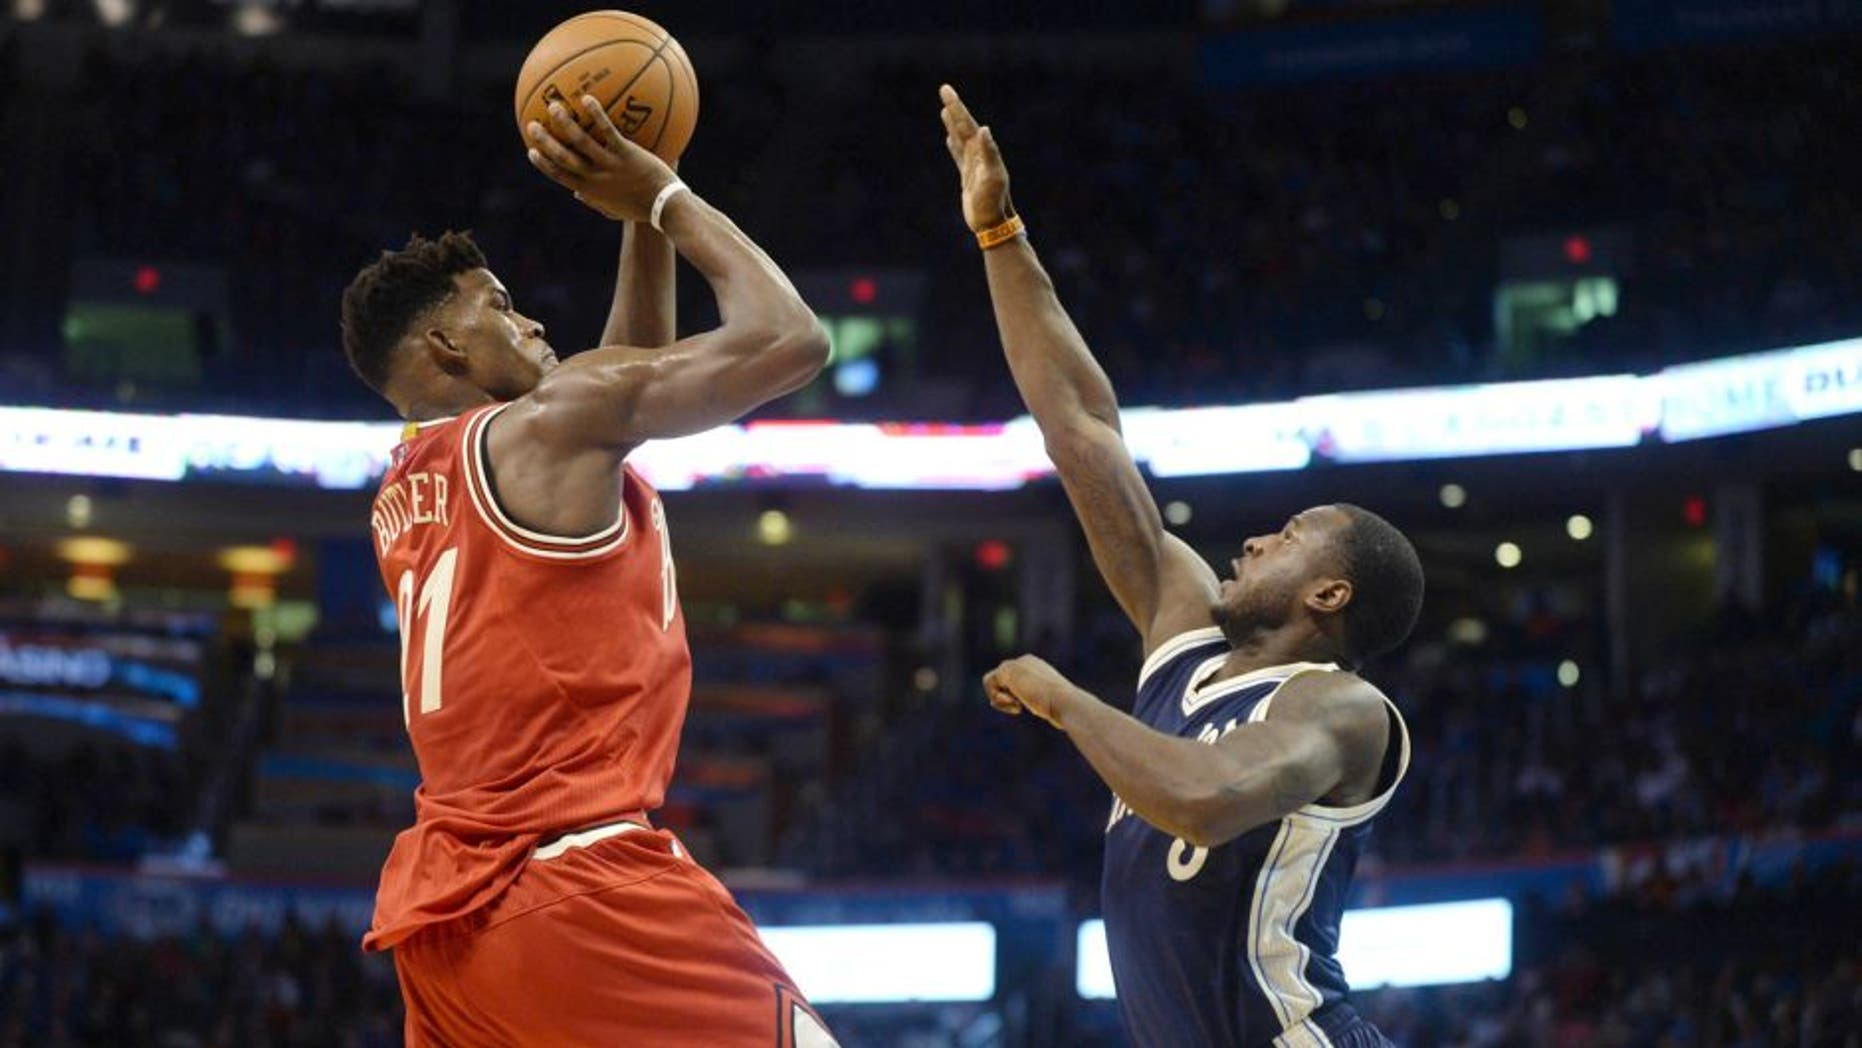 Dec 25, 2015; Oklahoma City, OK, USA; Chicago Bulls guard Jimmy Butler (21) shoots the ball against Oklahoma City Thunder guard Dion Waiters (3) during the second half of a NBA basketball game on Christmas at Chesapeake Energy Arena. Mandatory Credit: Mark D. Smith-USA TODAY Sports